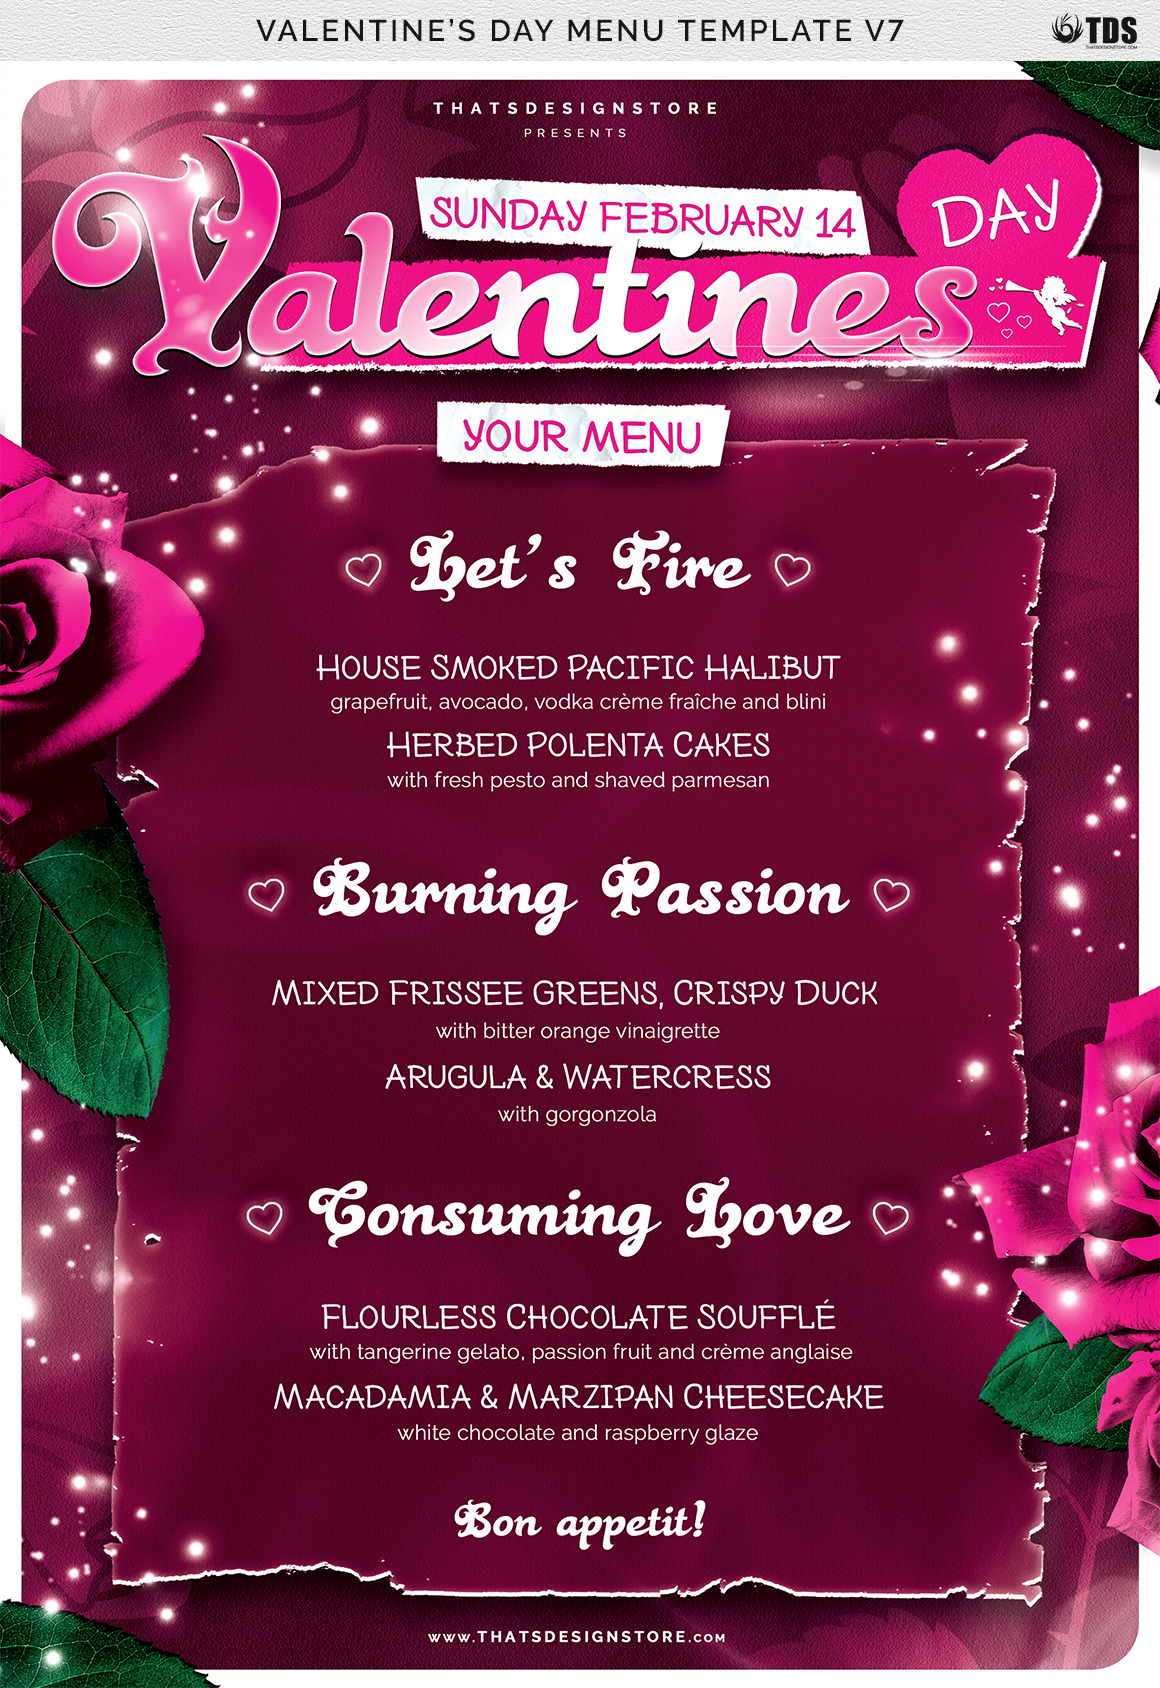 Valentines Day Menu Template V7 example image 7